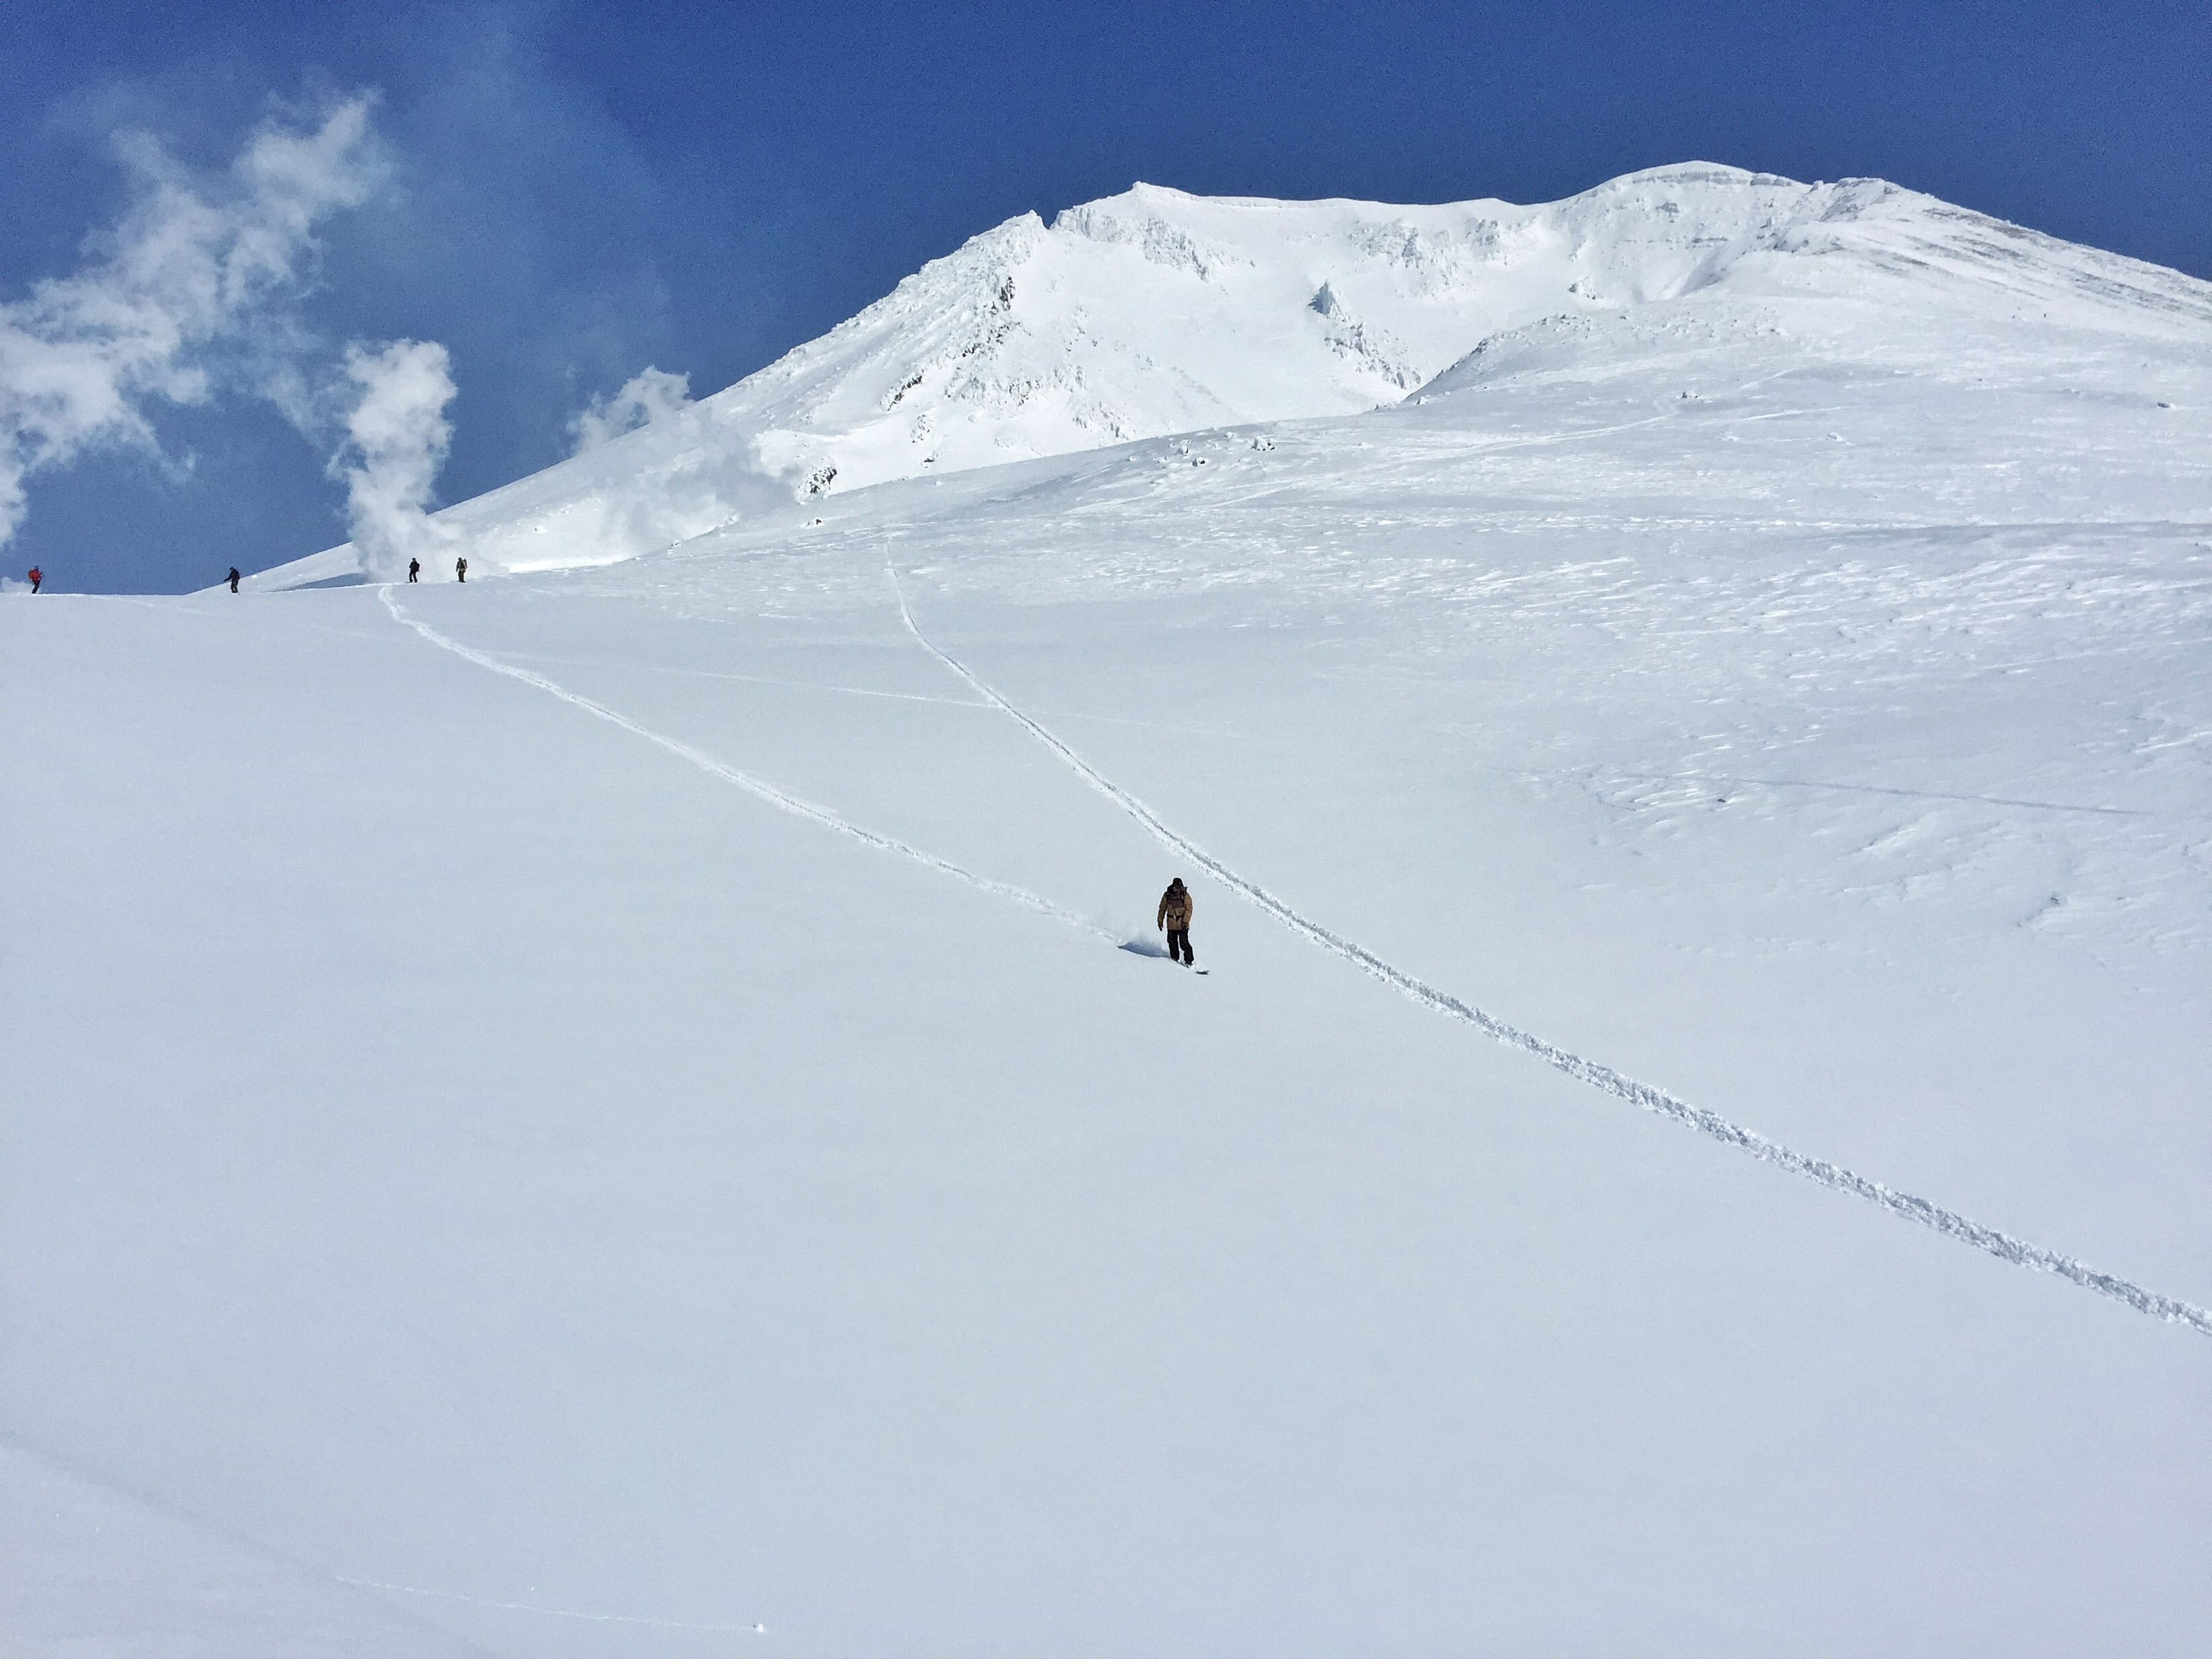 Riding away from Asahidake volcano